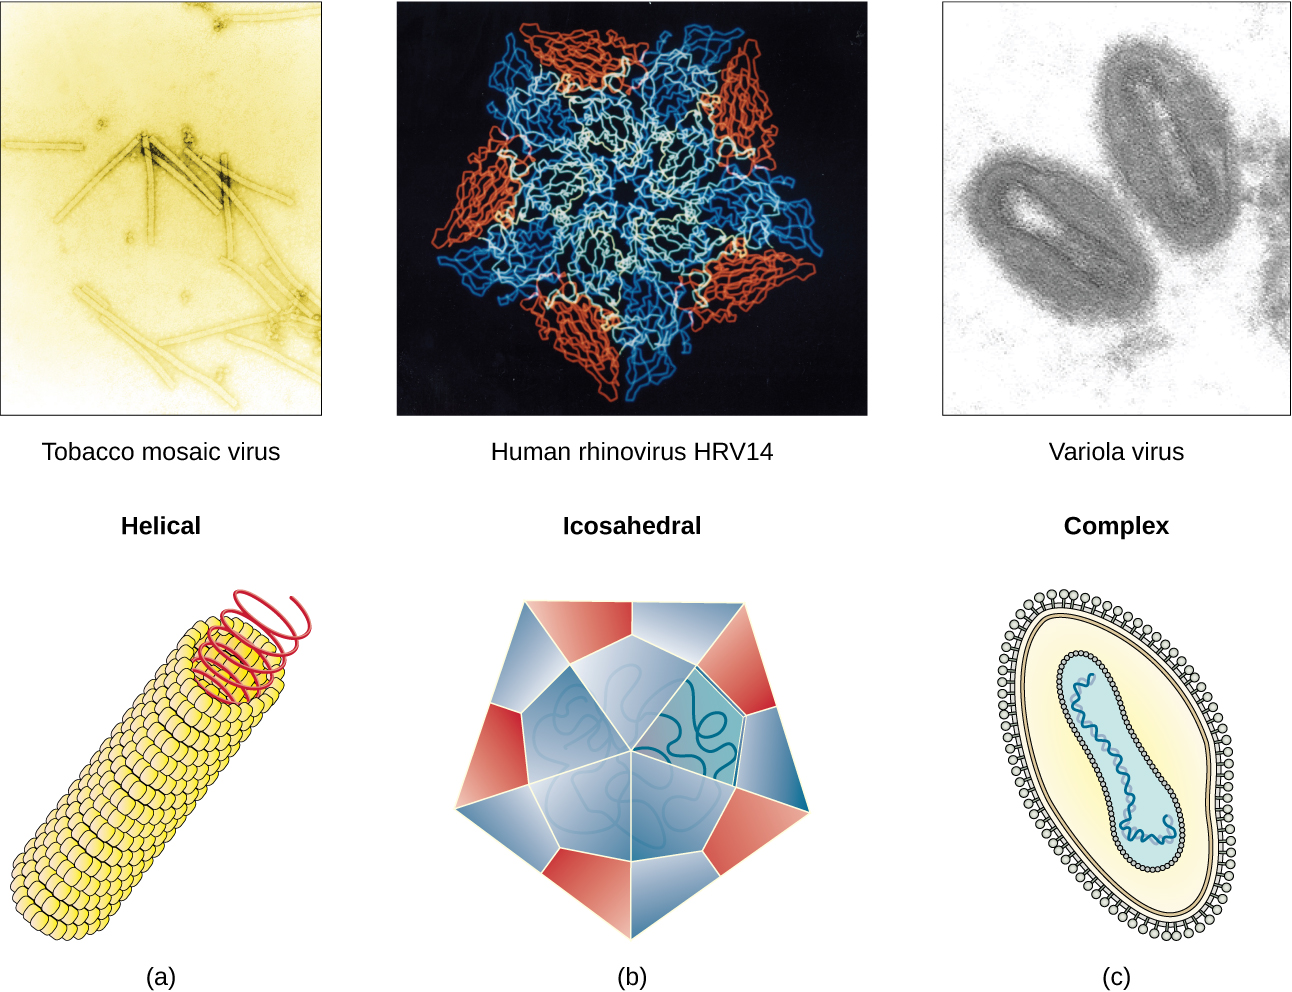 Figure a is a helical virus which has a long linear structure. The outer proteins are small spheres arranged into a long, hollow tube. Inside the tube is the genetic material. Tobacco mosaic virus is an example of a helical virus. Figure b is an Icosehedral viruses have a polyhedron structure. The example shown is human rhinovirus which has a pentagon structure. Complex viruses have a more complex structure. The example is variola which has an ovoid structure.